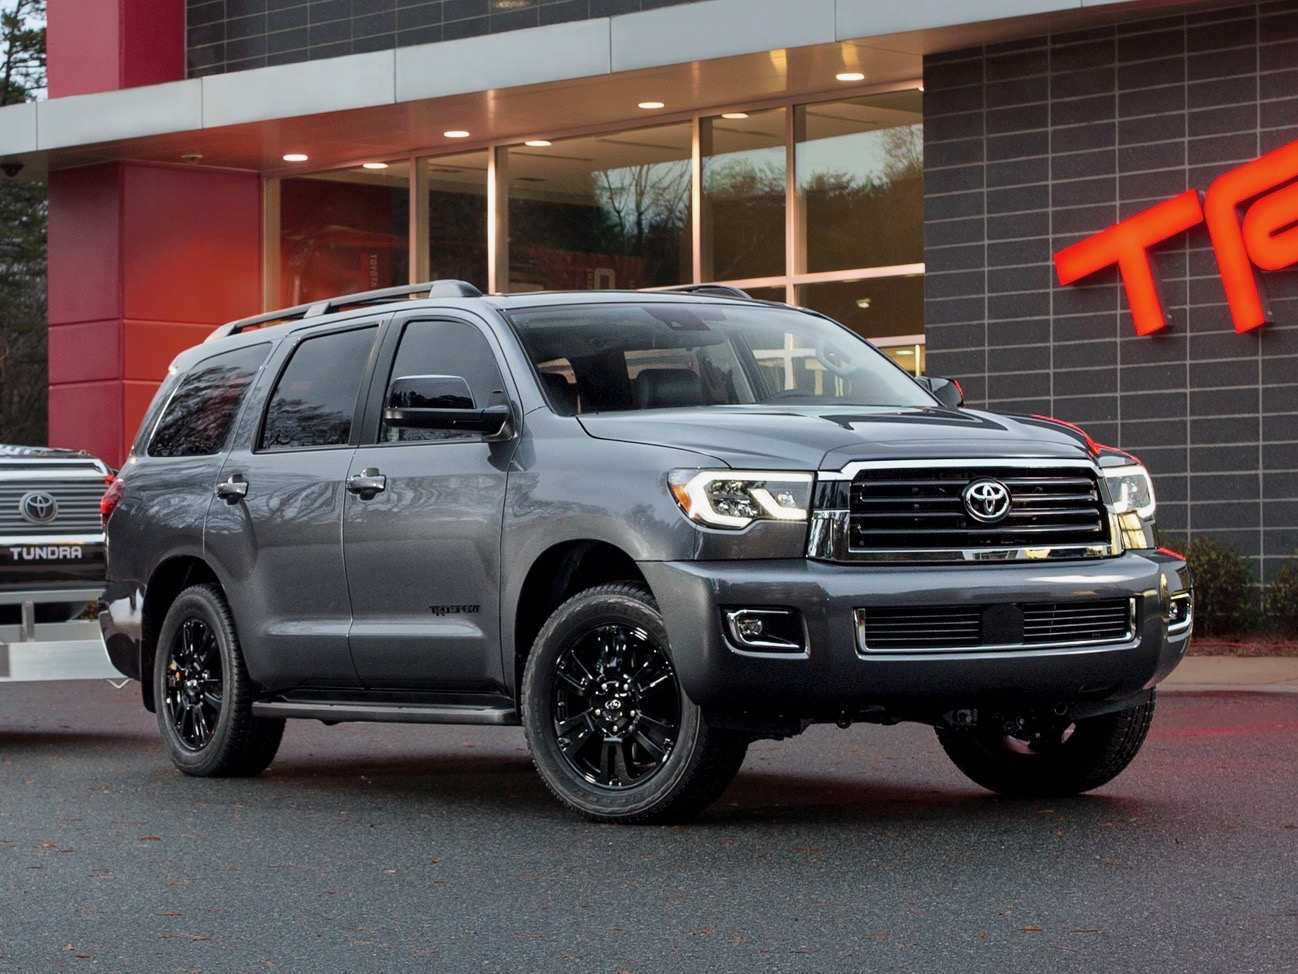 65 Gallery of 2019 Toyota Sequoia Review Interior with 2019 Toyota Sequoia Review